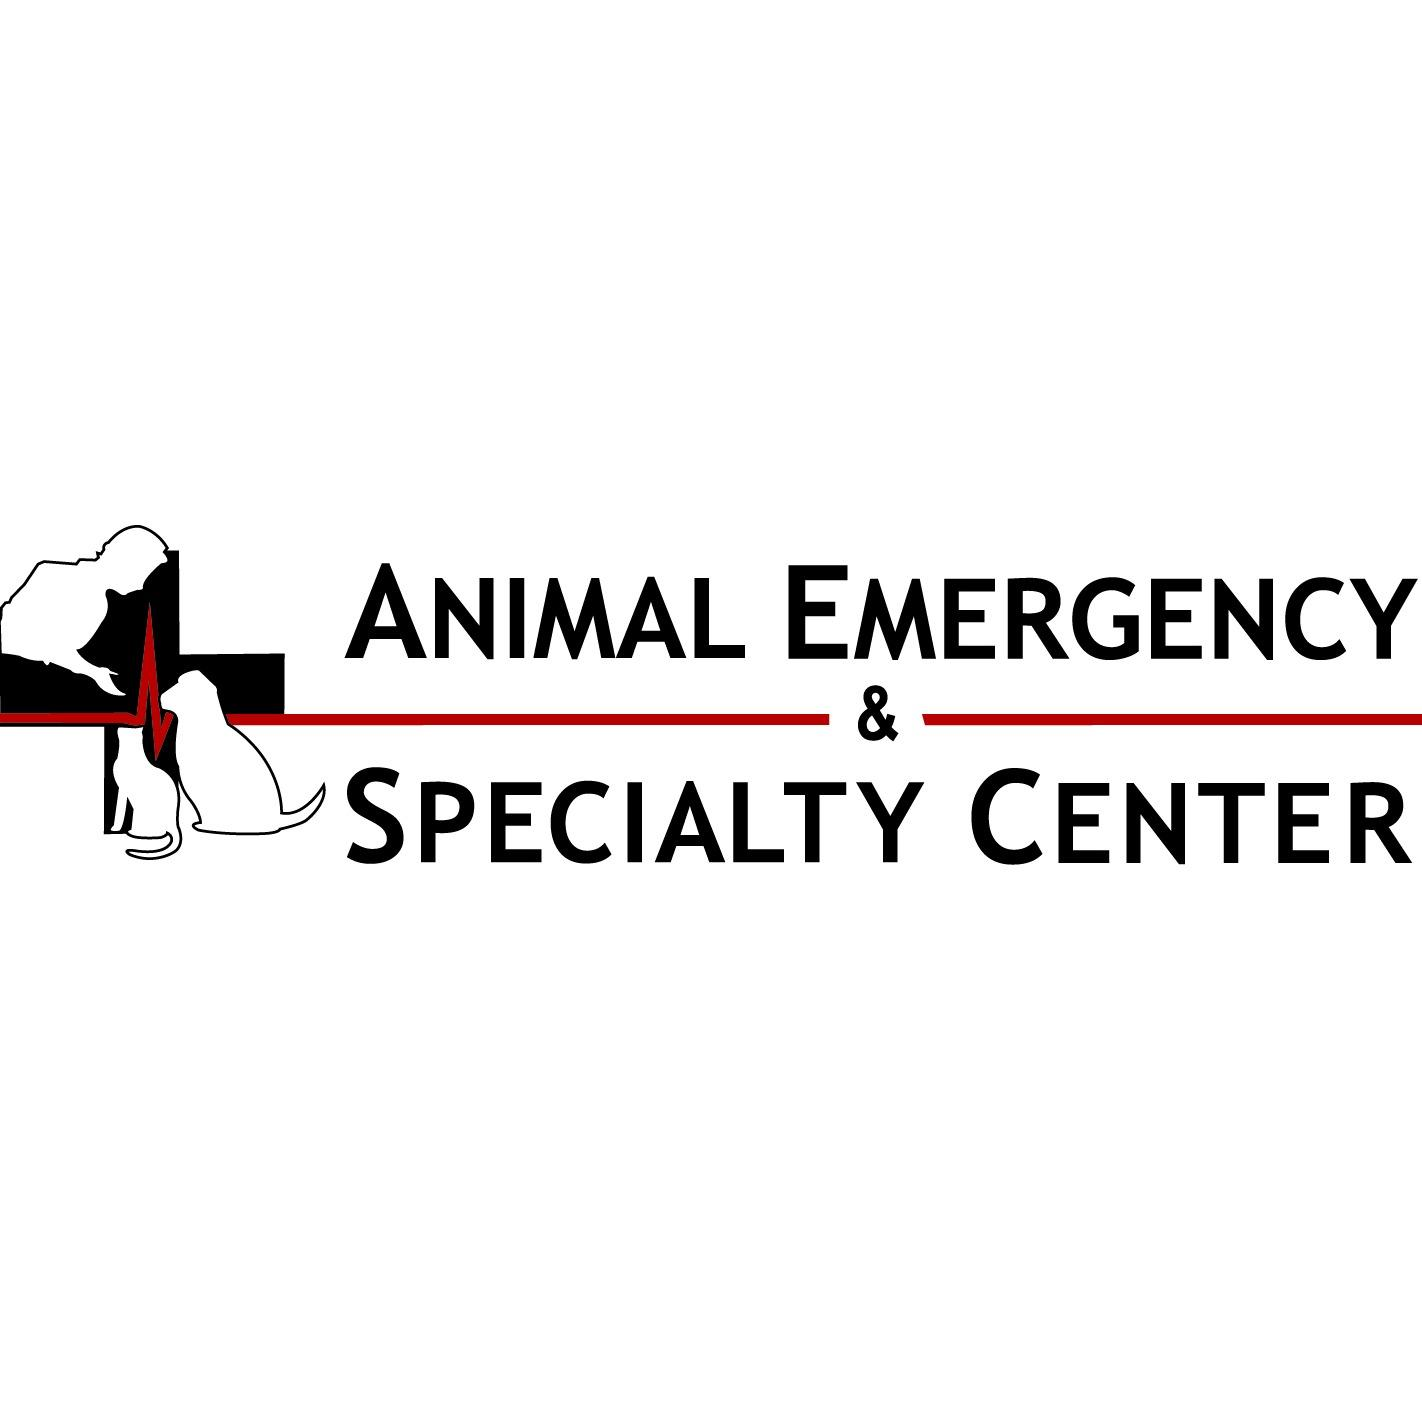 Animal Emergency & Specialty Center